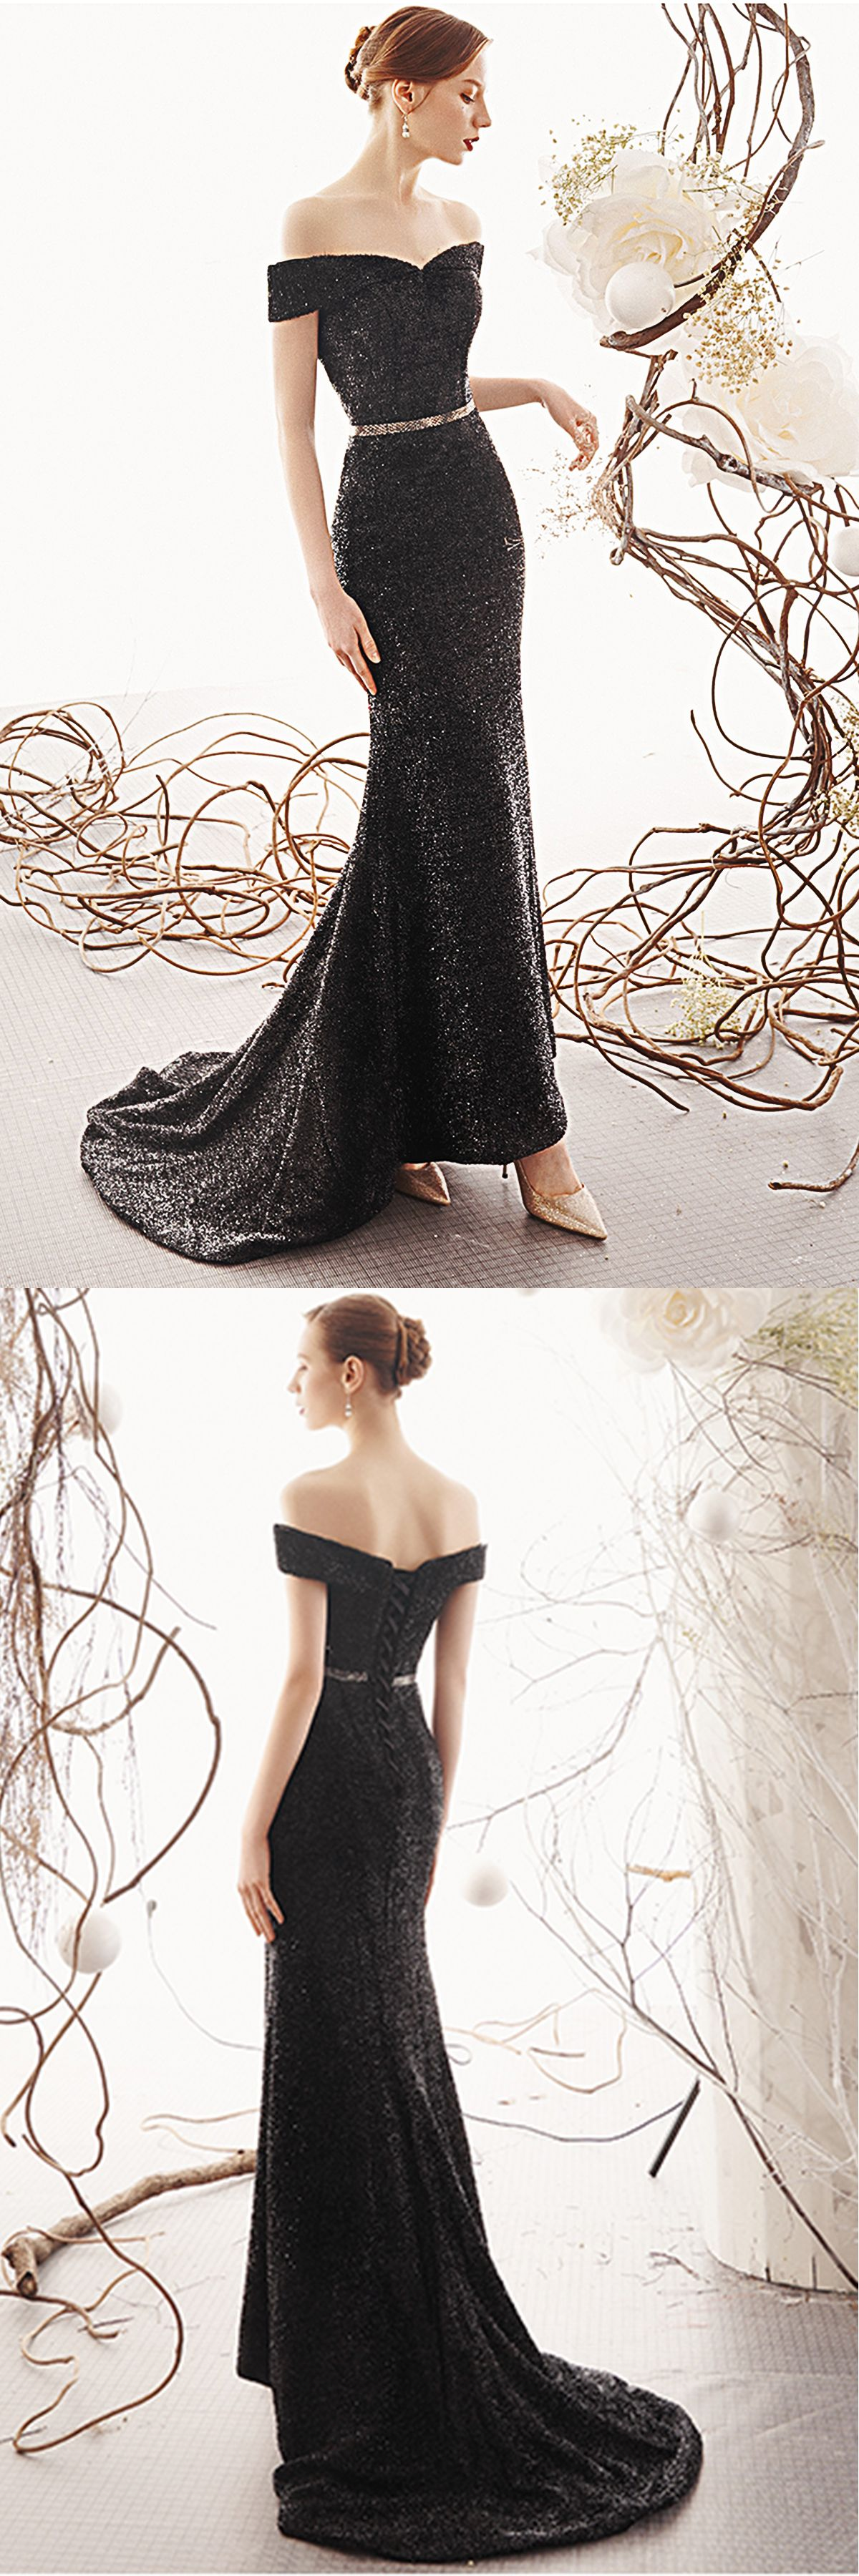 Black Bling Bling Off Shoulder Sweep Train Evening Dress With Sleeves From Girlsprom Dresses Evening Dresses With Sleeves Train Evening Dress [ 3600 x 1200 Pixel ]